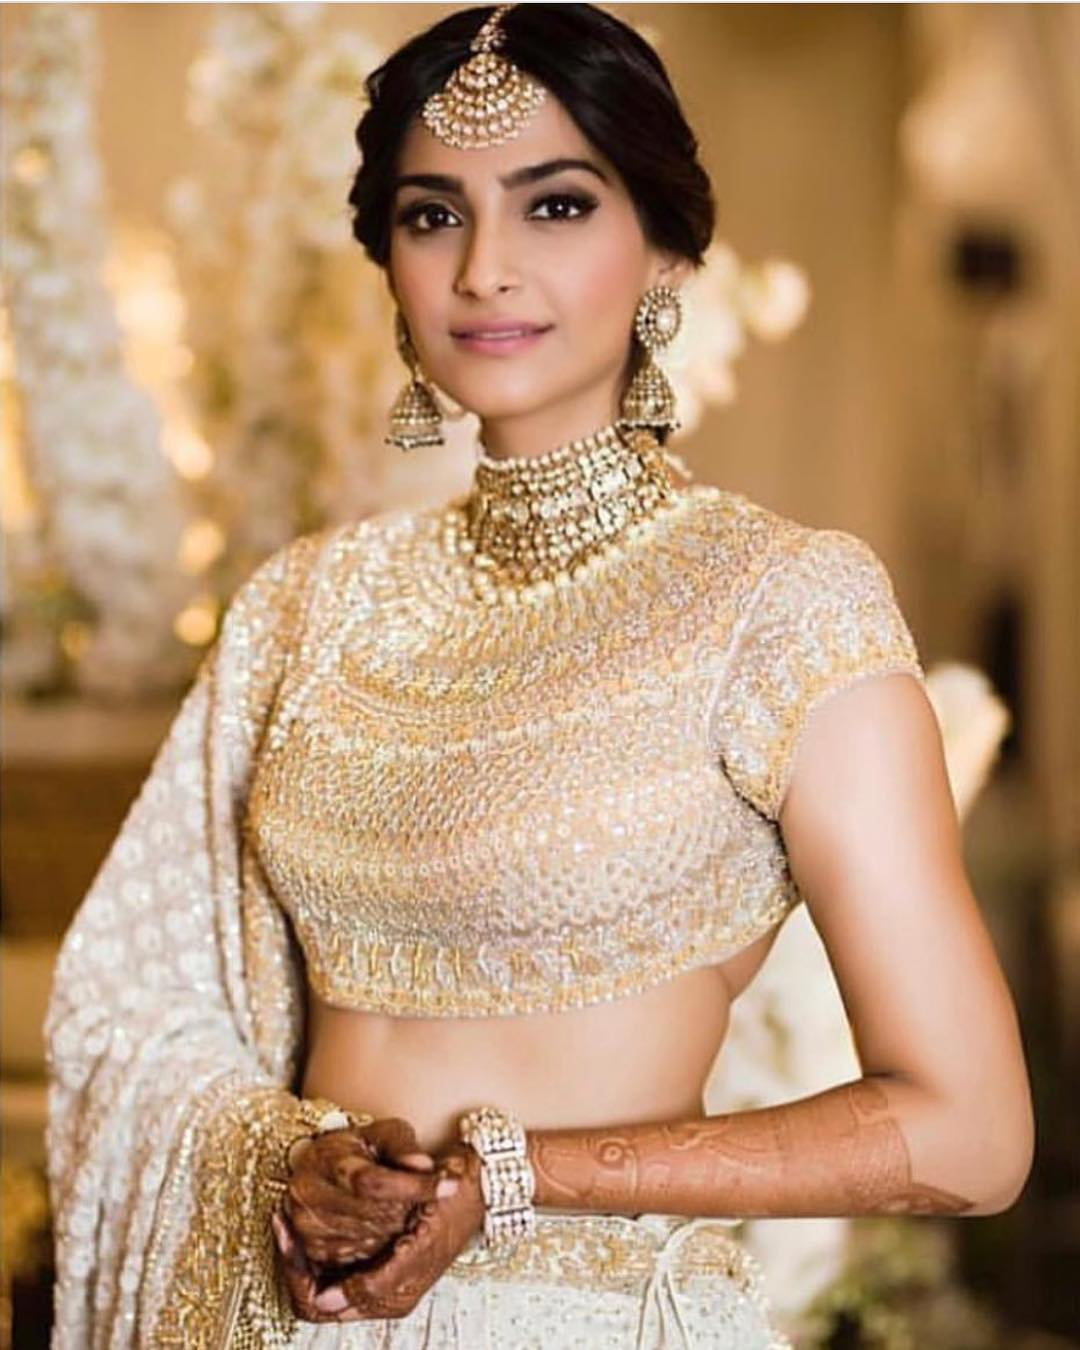 15-1 Sonam Kapoor Wedding Pics - Engagement and Complete Wedding Pictures